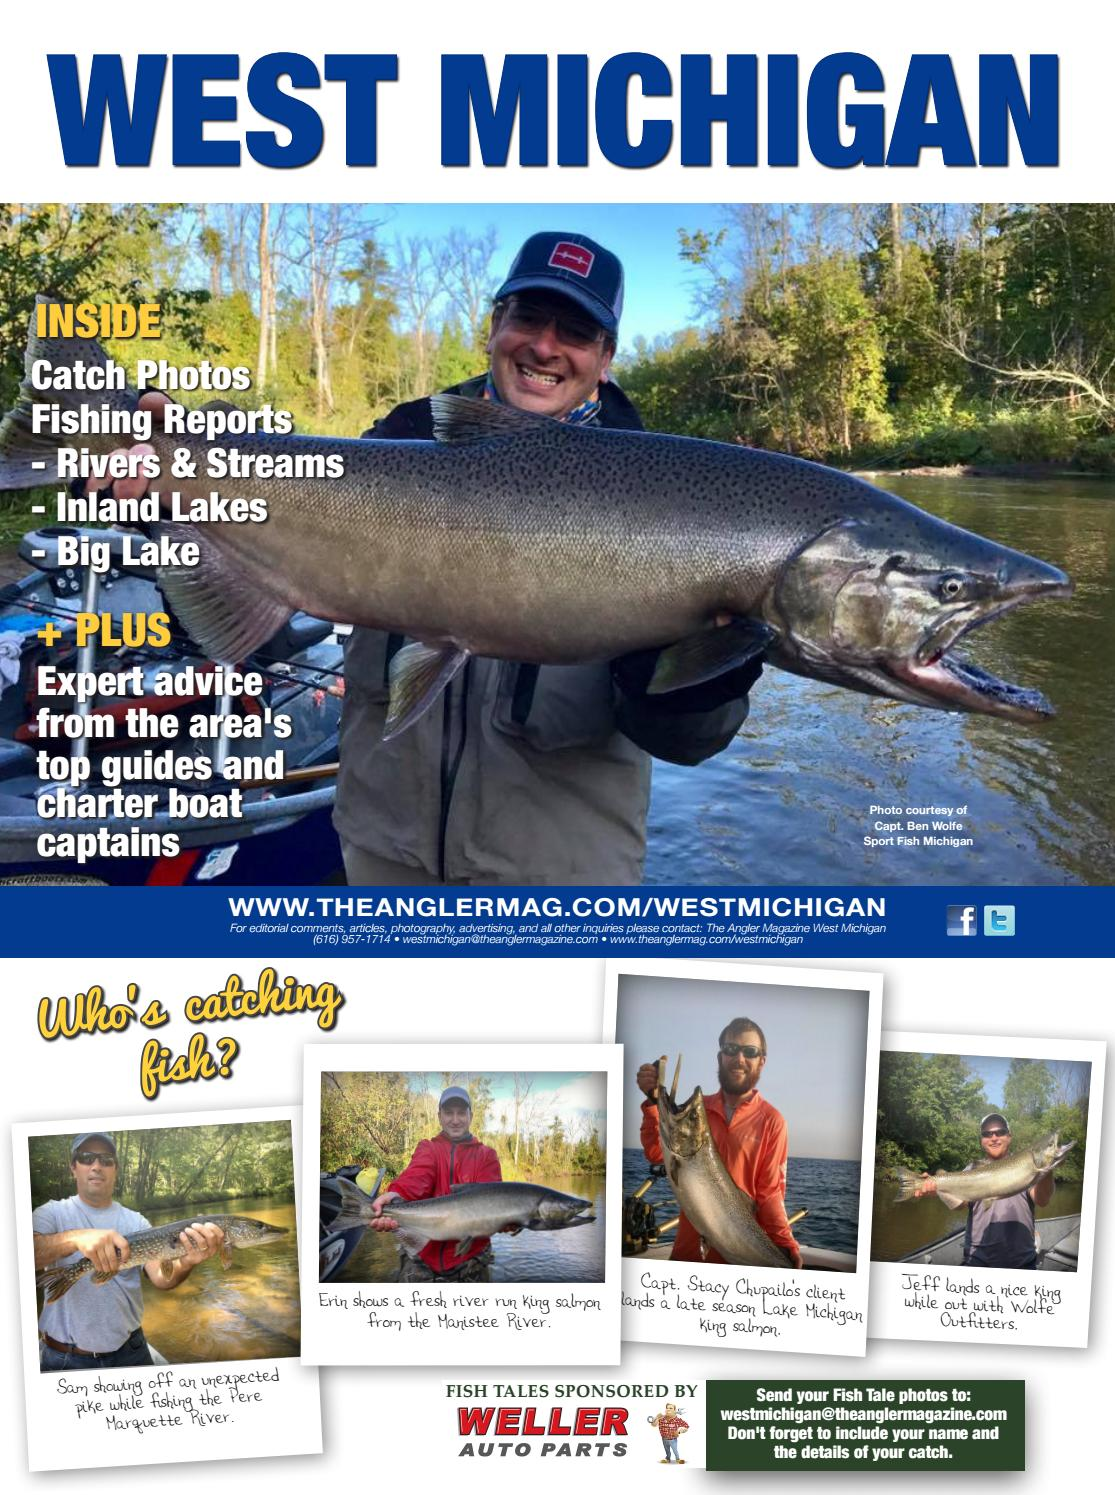 The Angler Magazine - October / West Michigan